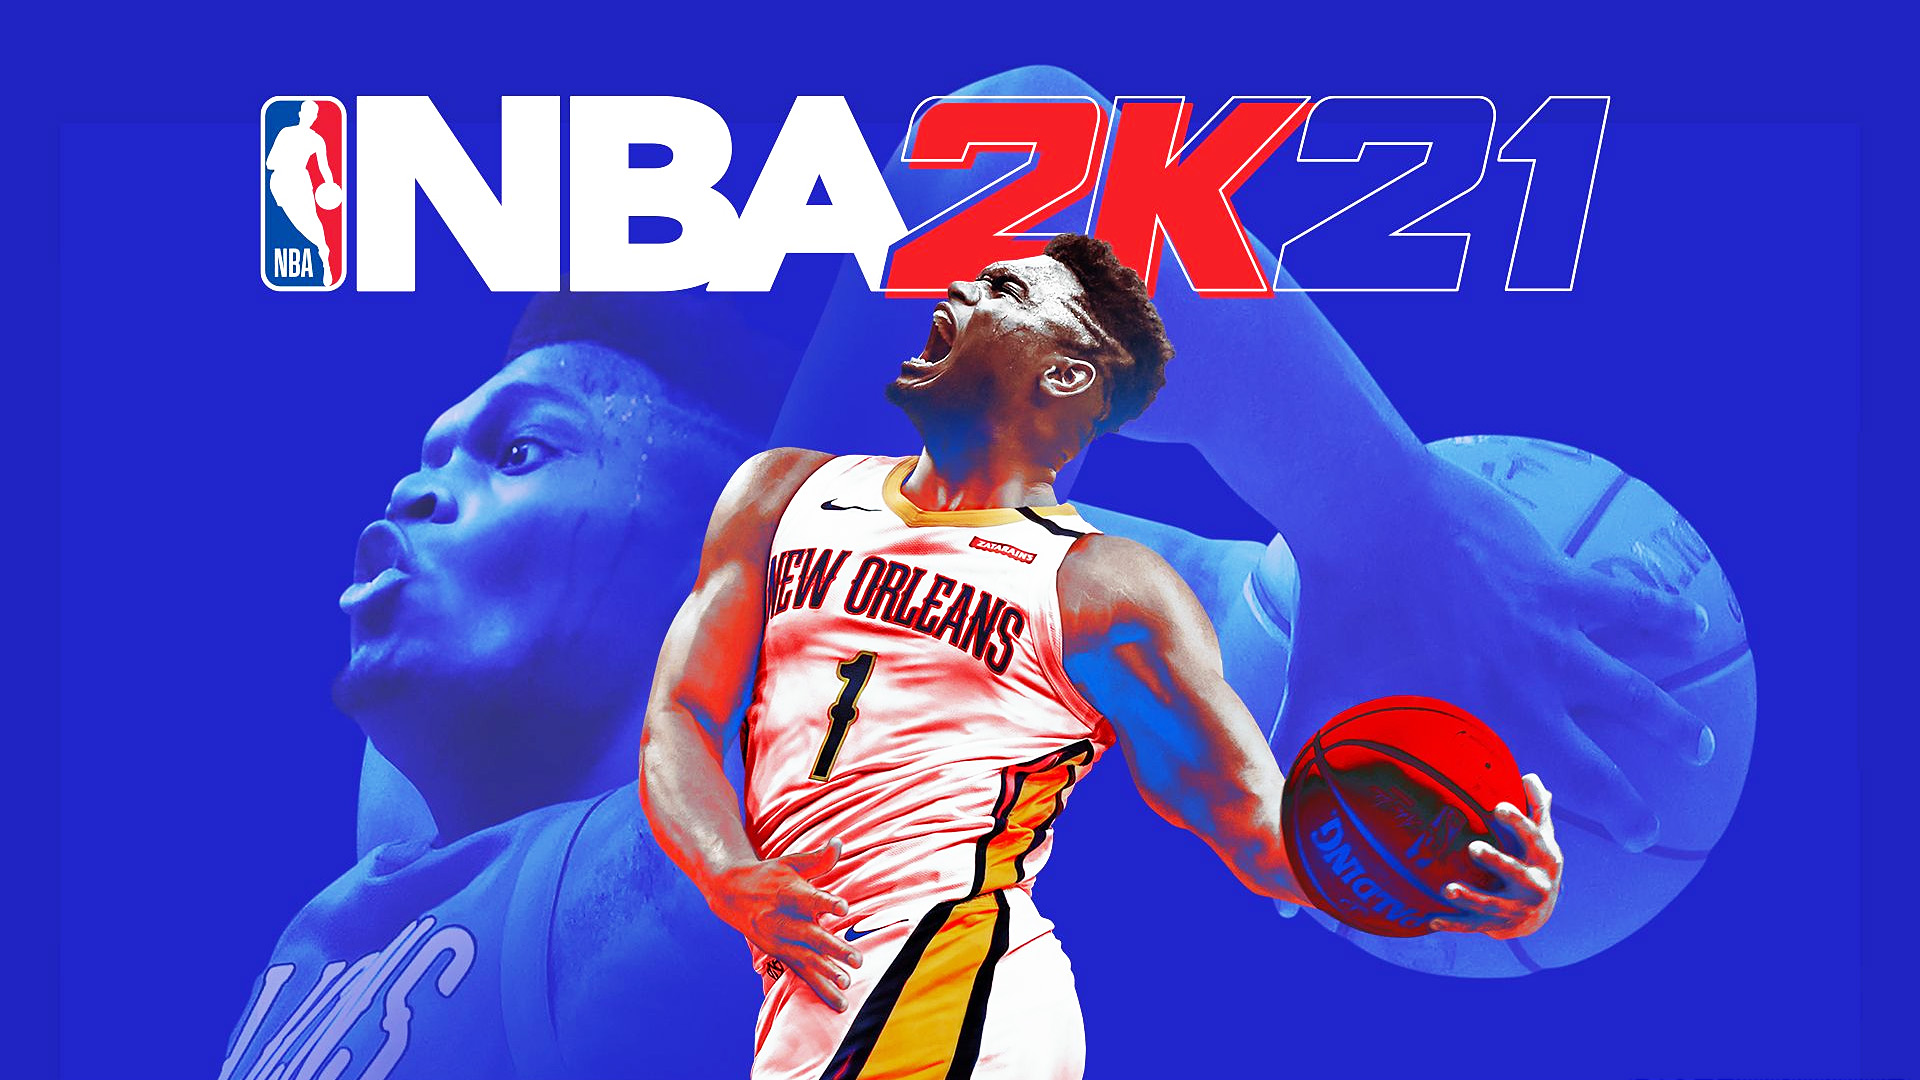 Nba 2k21 Weighs In Massive On The Xbox Series X